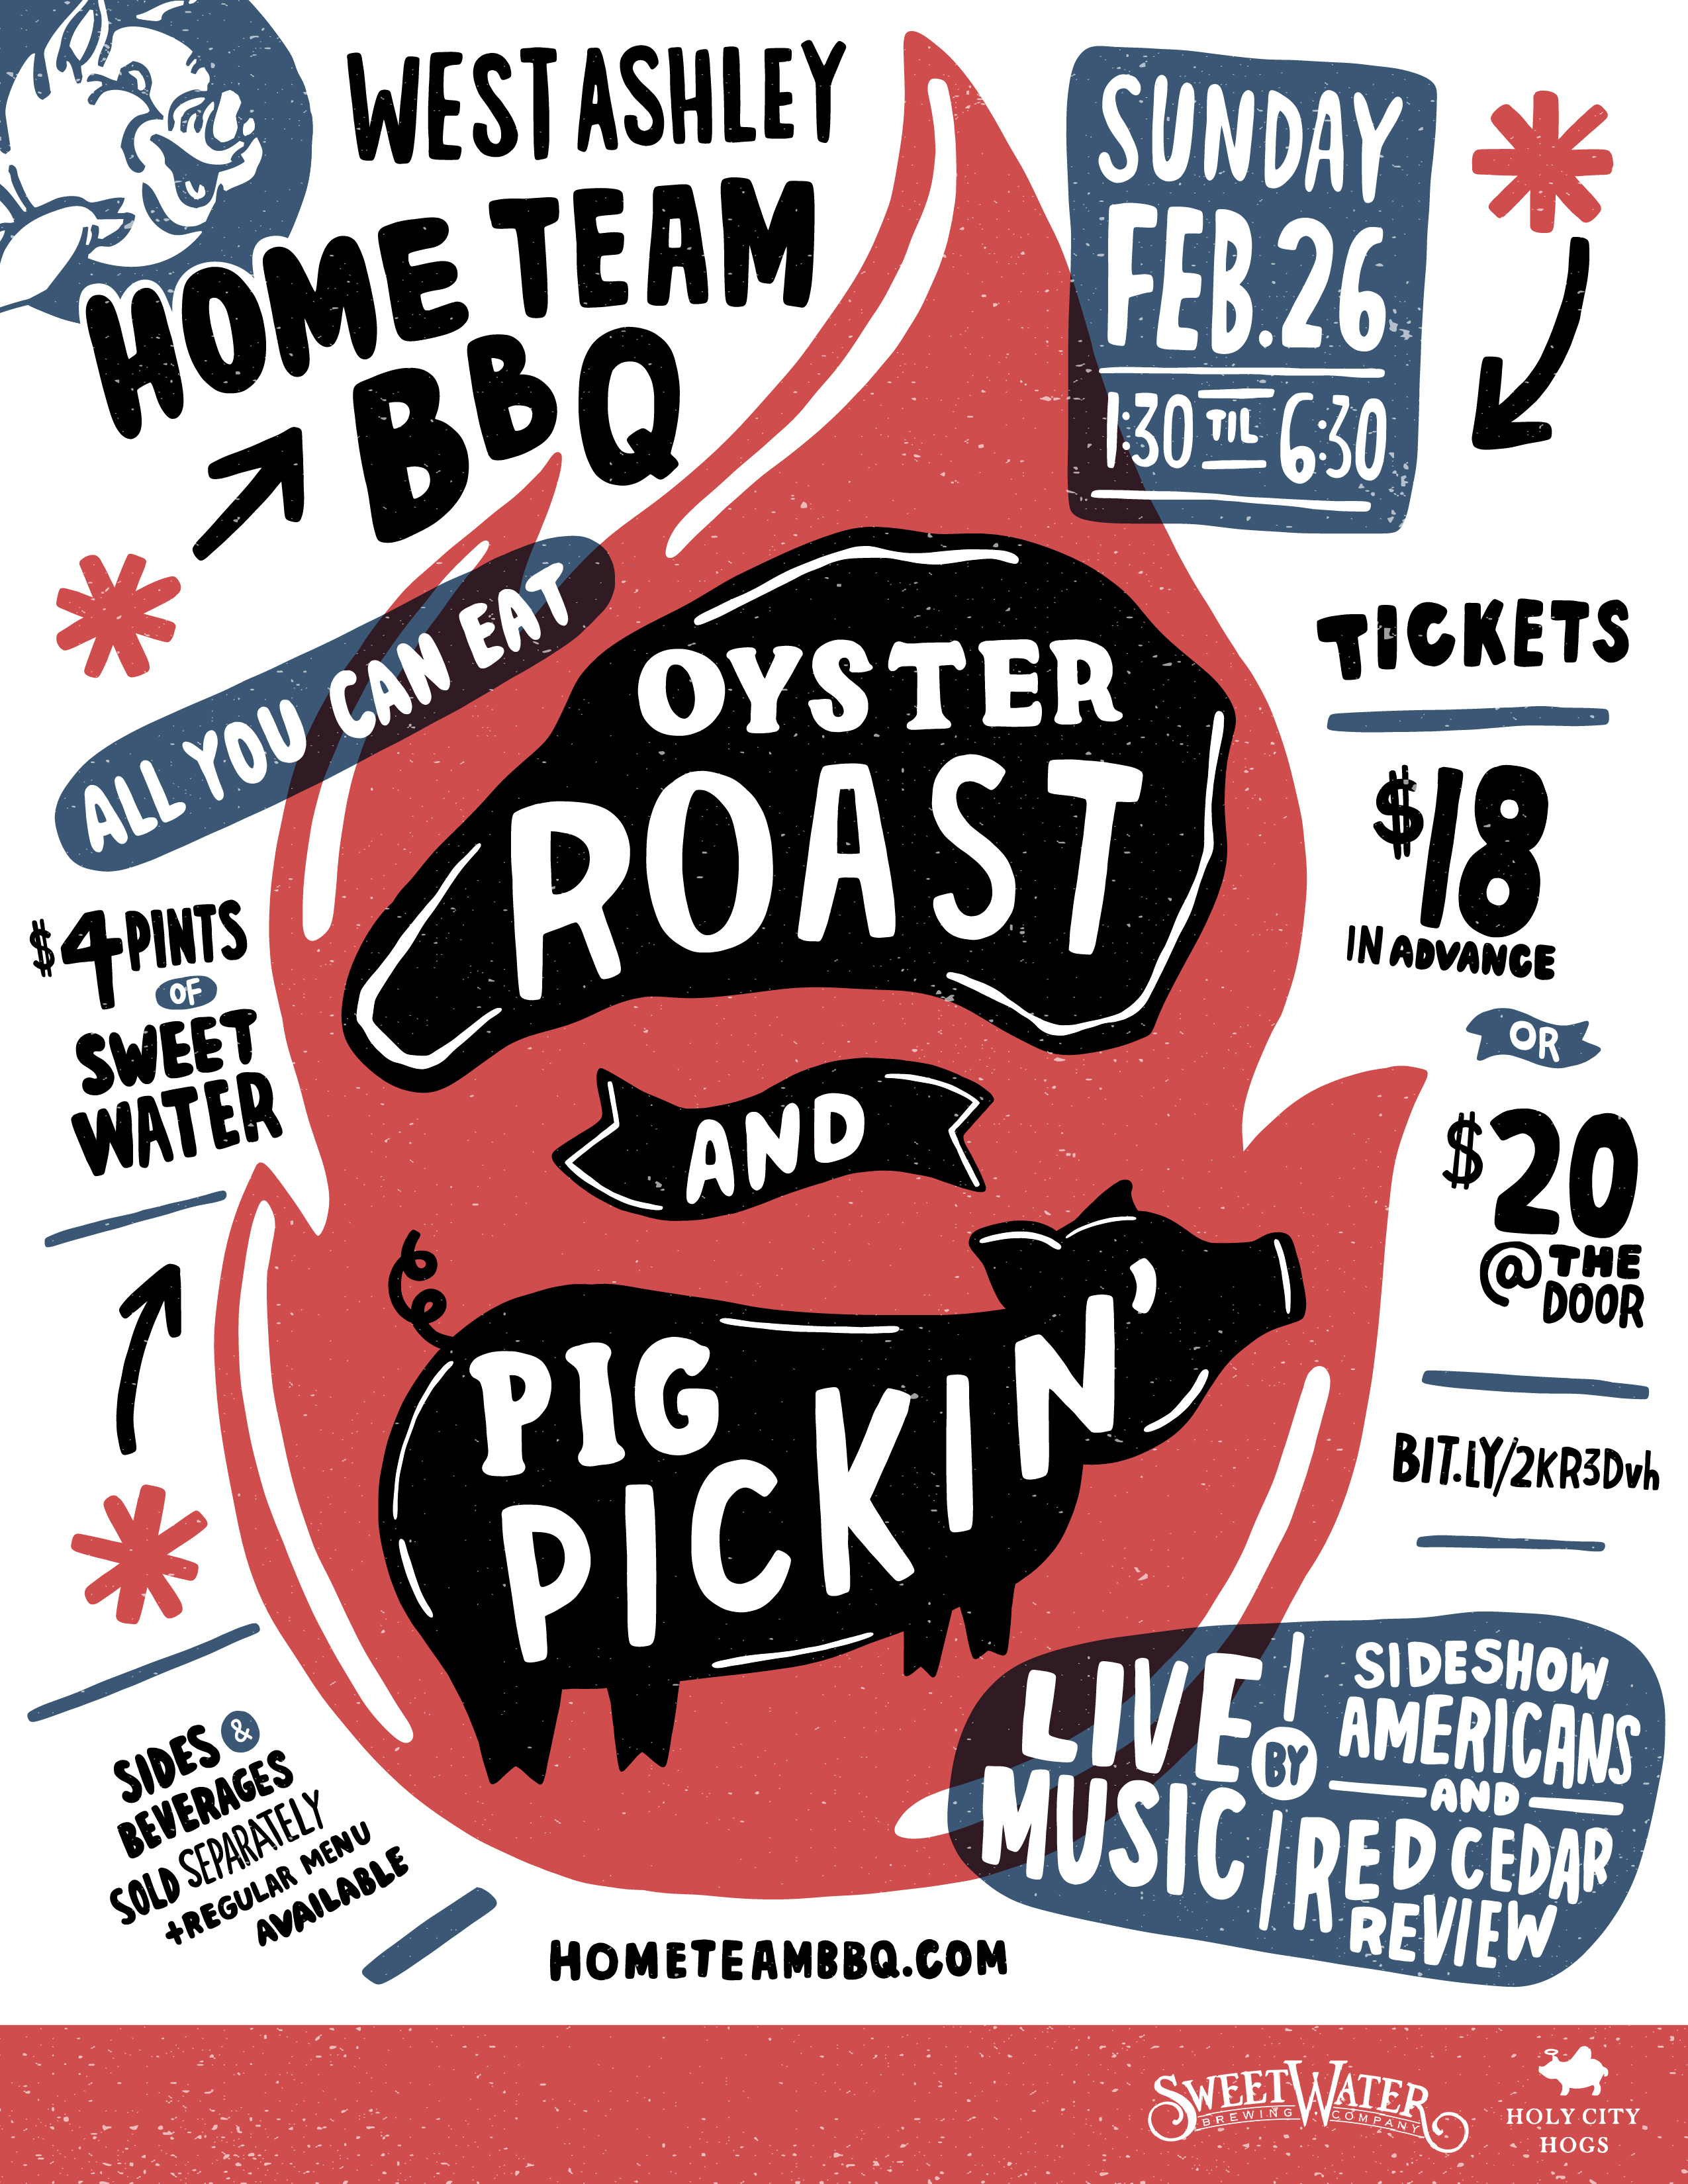 Home Team BBQ West Ashley Hosts Oyster Roast Pig Pickin